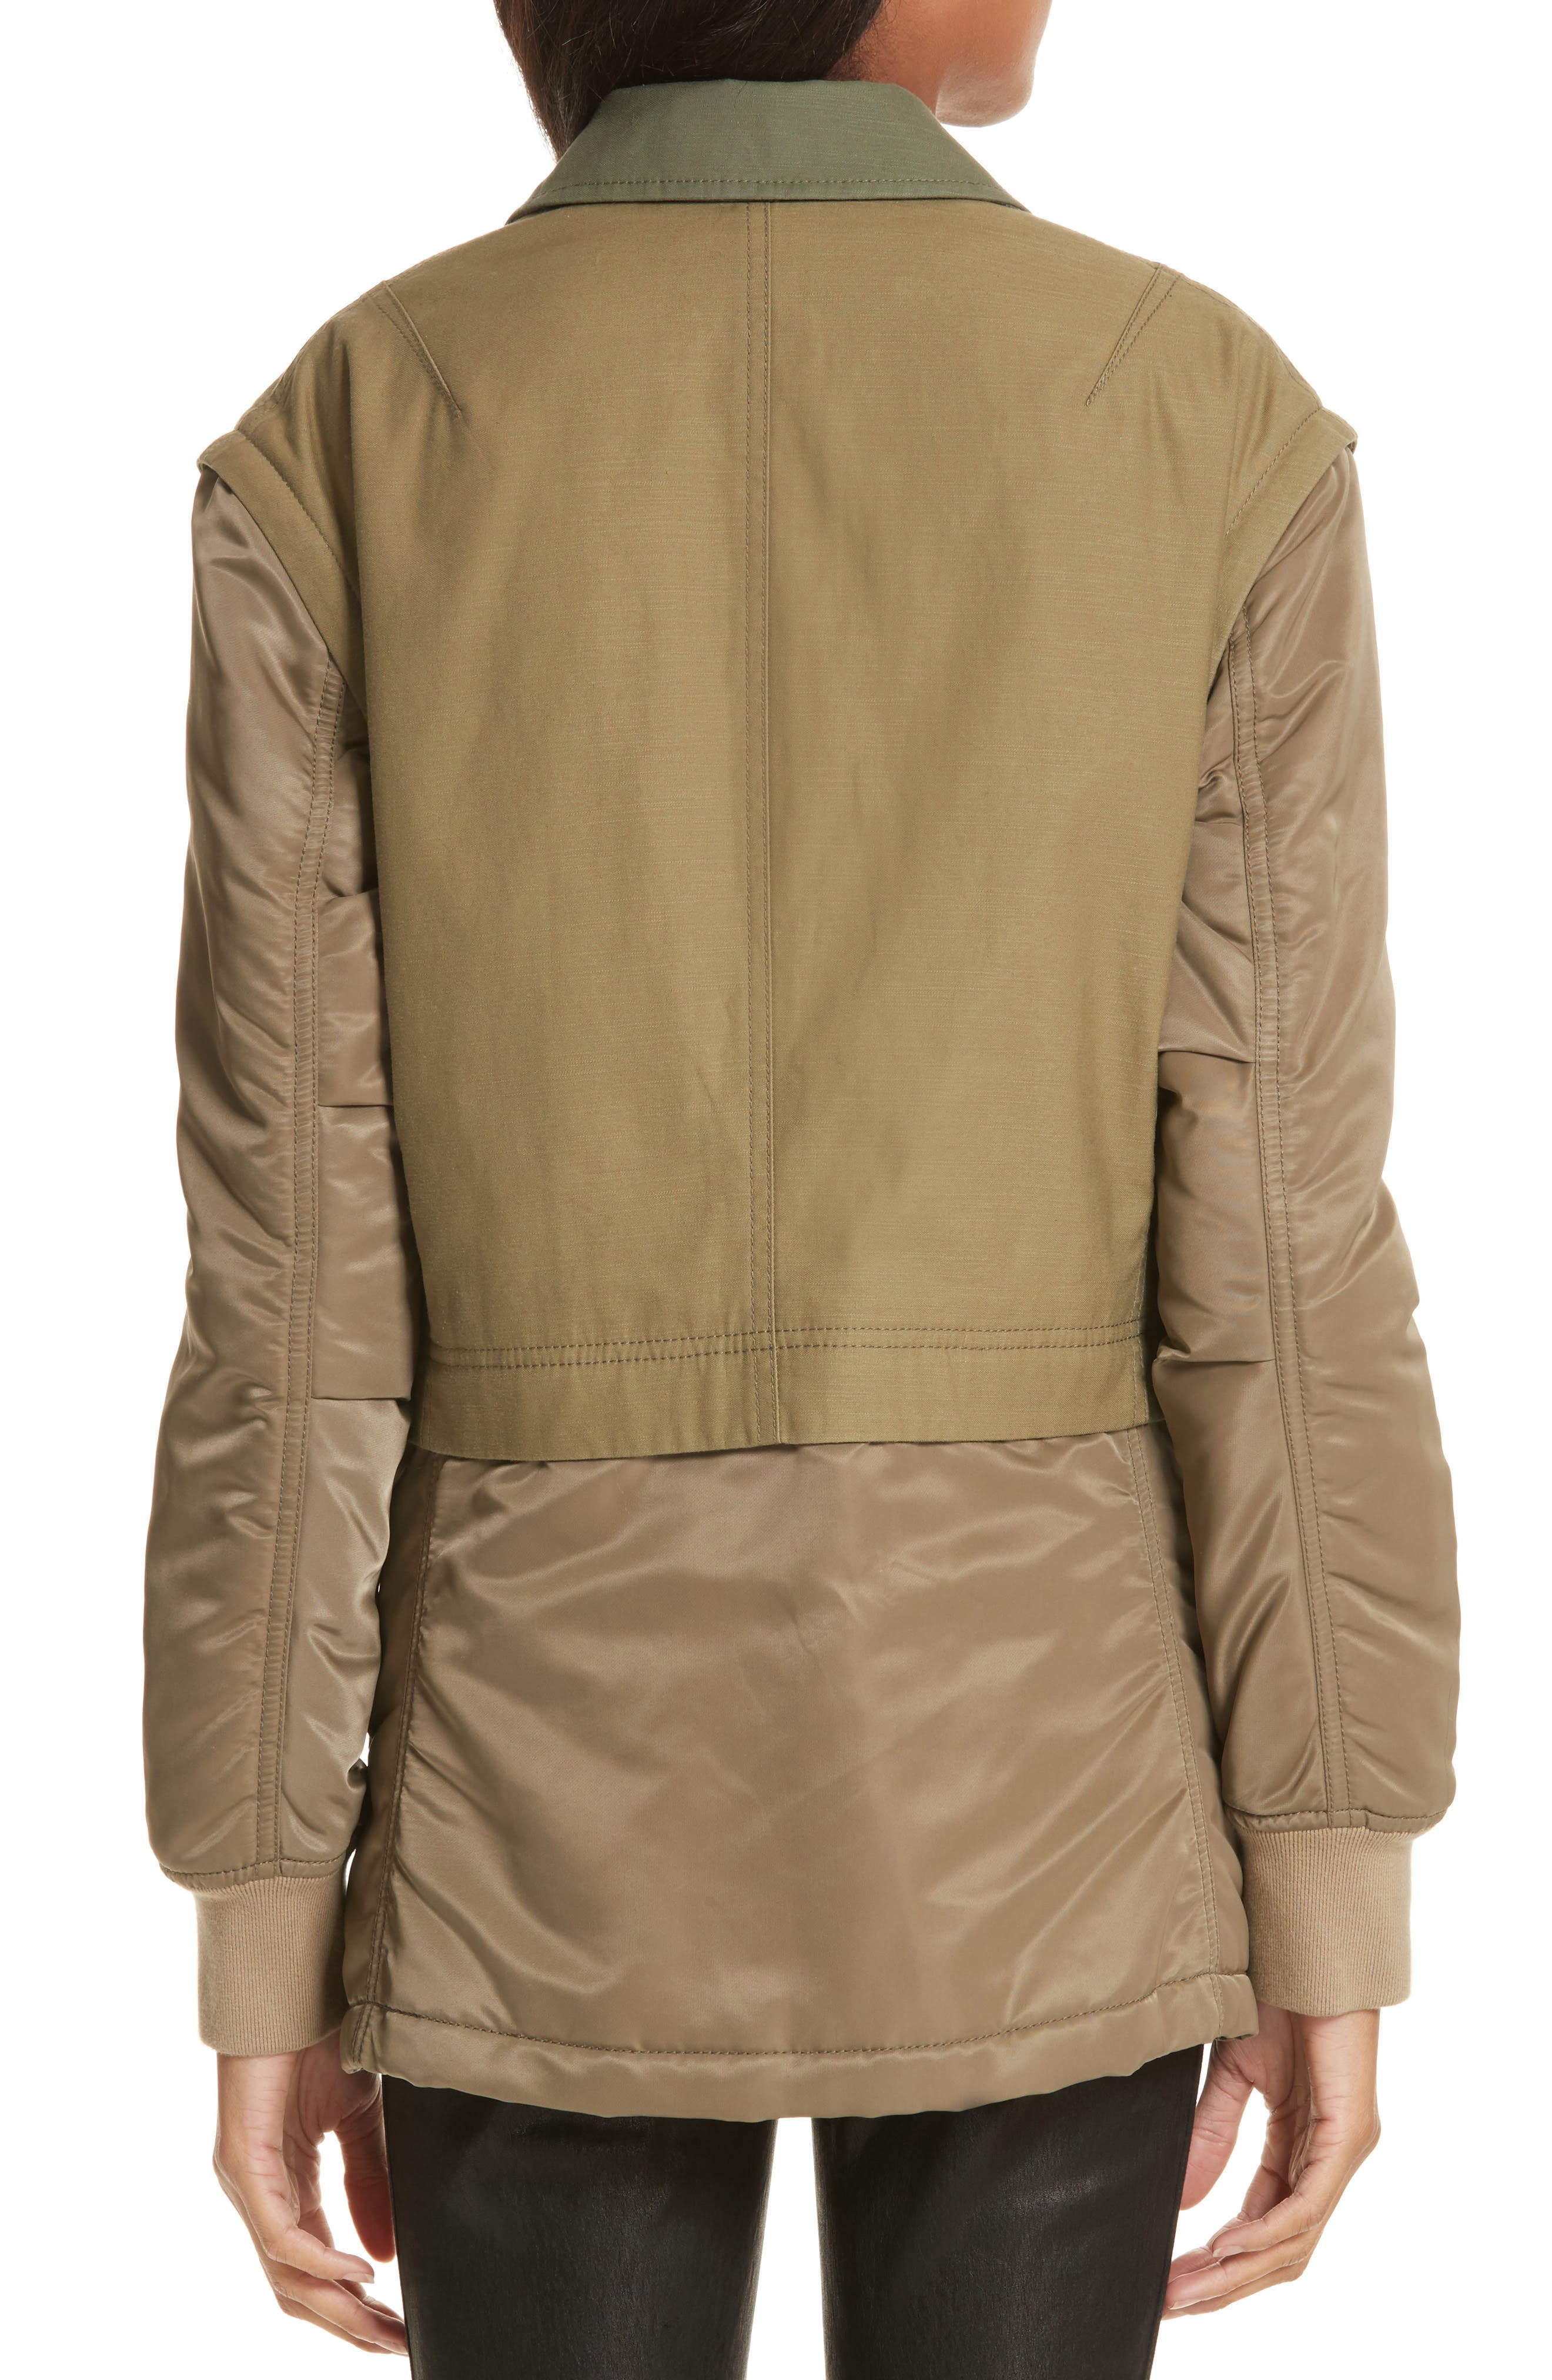 Modular Field Convertible Cotton Jacket,                             Alternate thumbnail 3, color,                             308